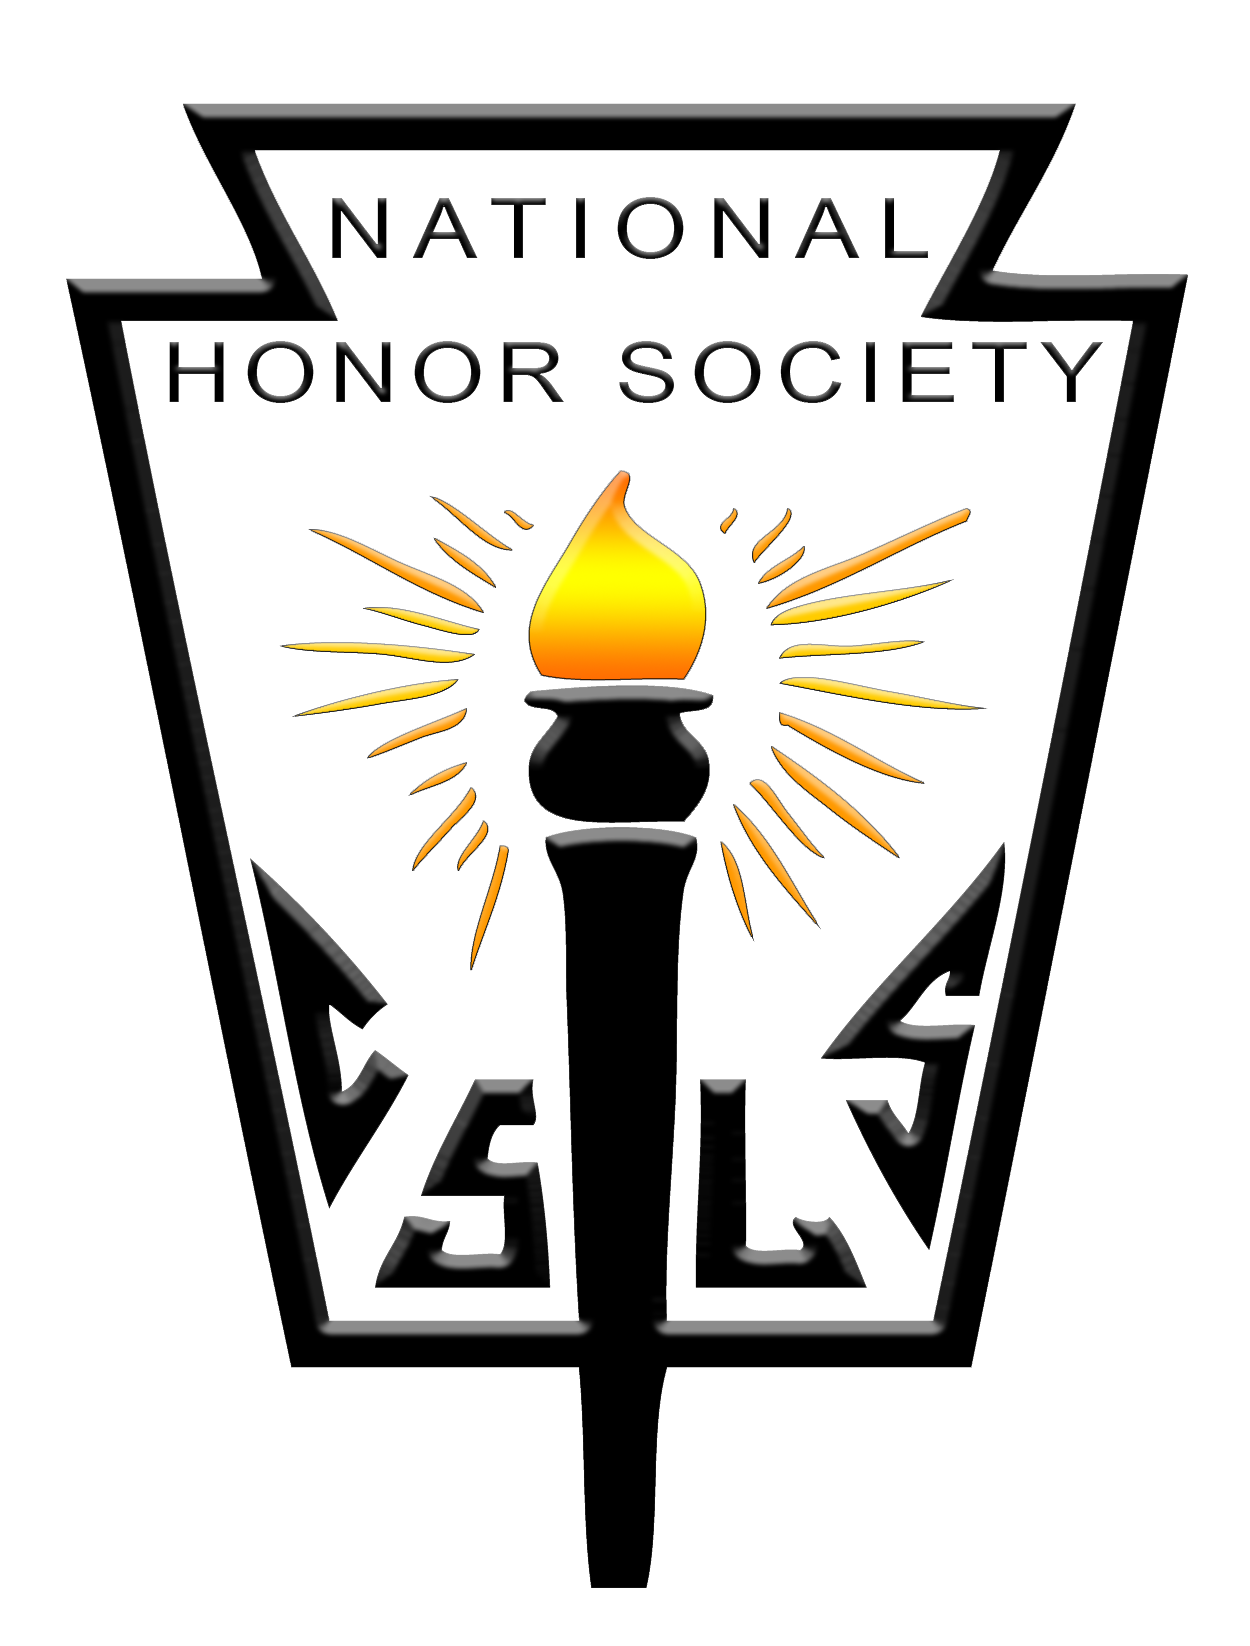 Logo of the group. It's a emblem with a black outline over it and a torch lit up by the center.